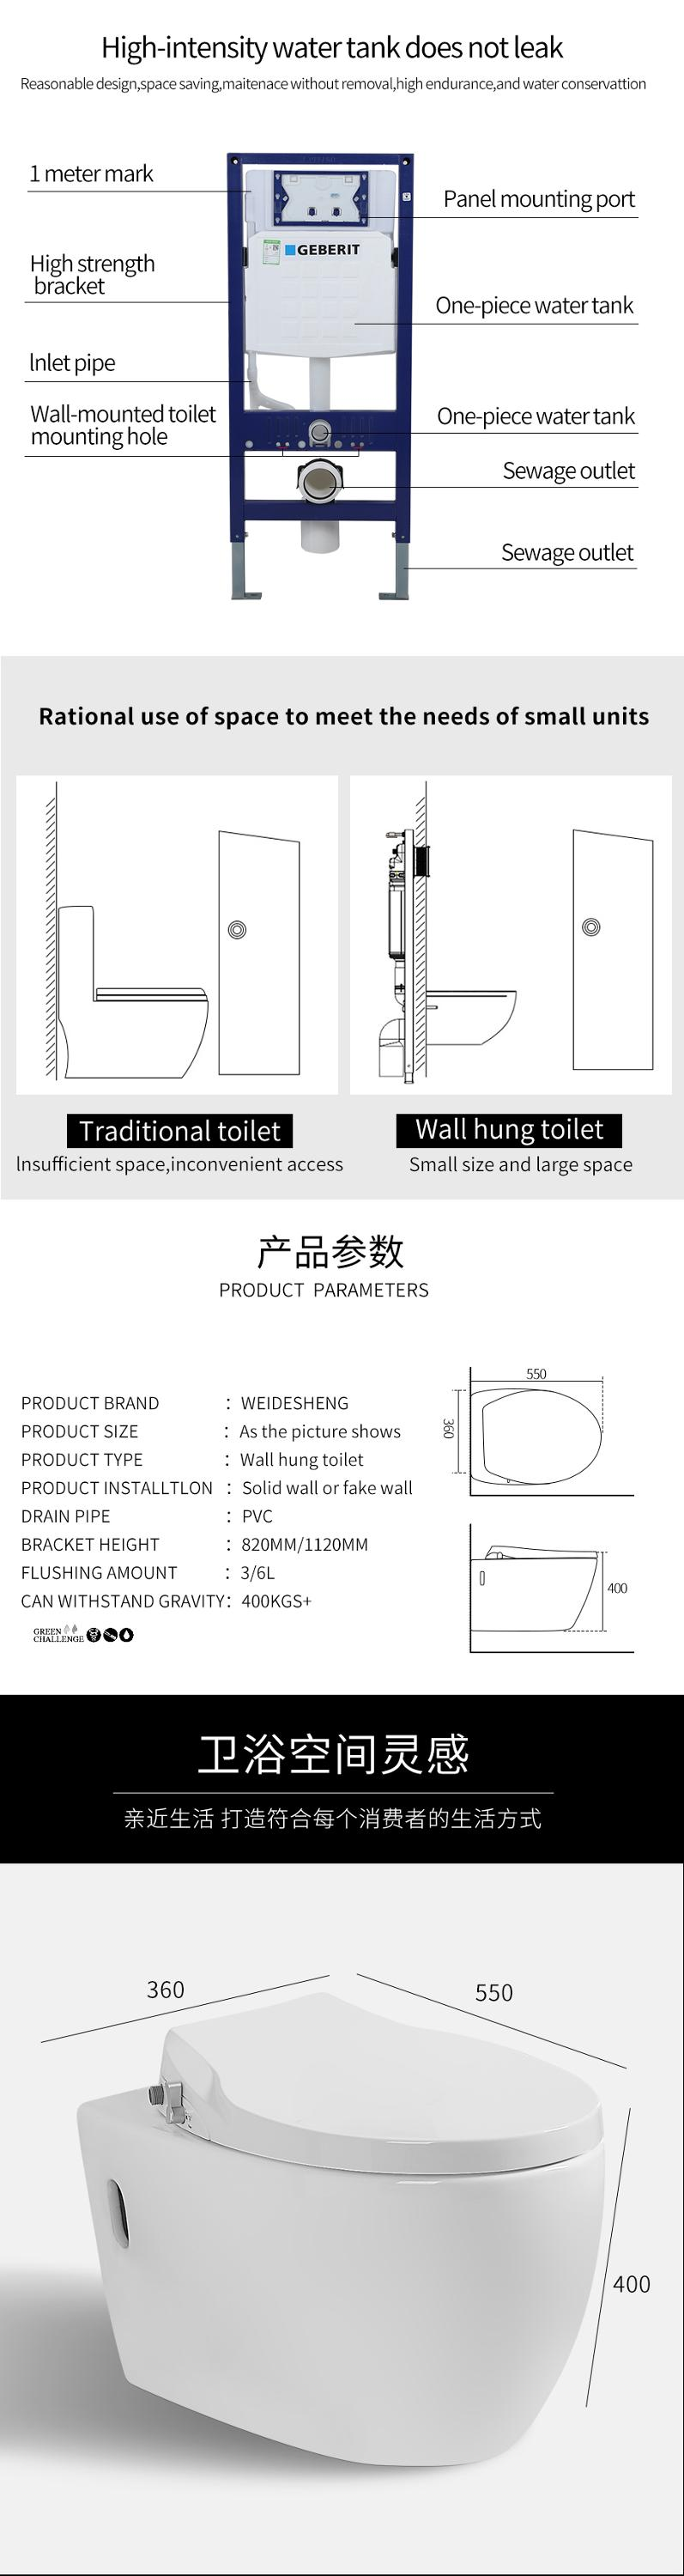 Wall hung wc with wash function for concealed cistern  China public ceramic sanitary ware bathroom robust solid surface rimless